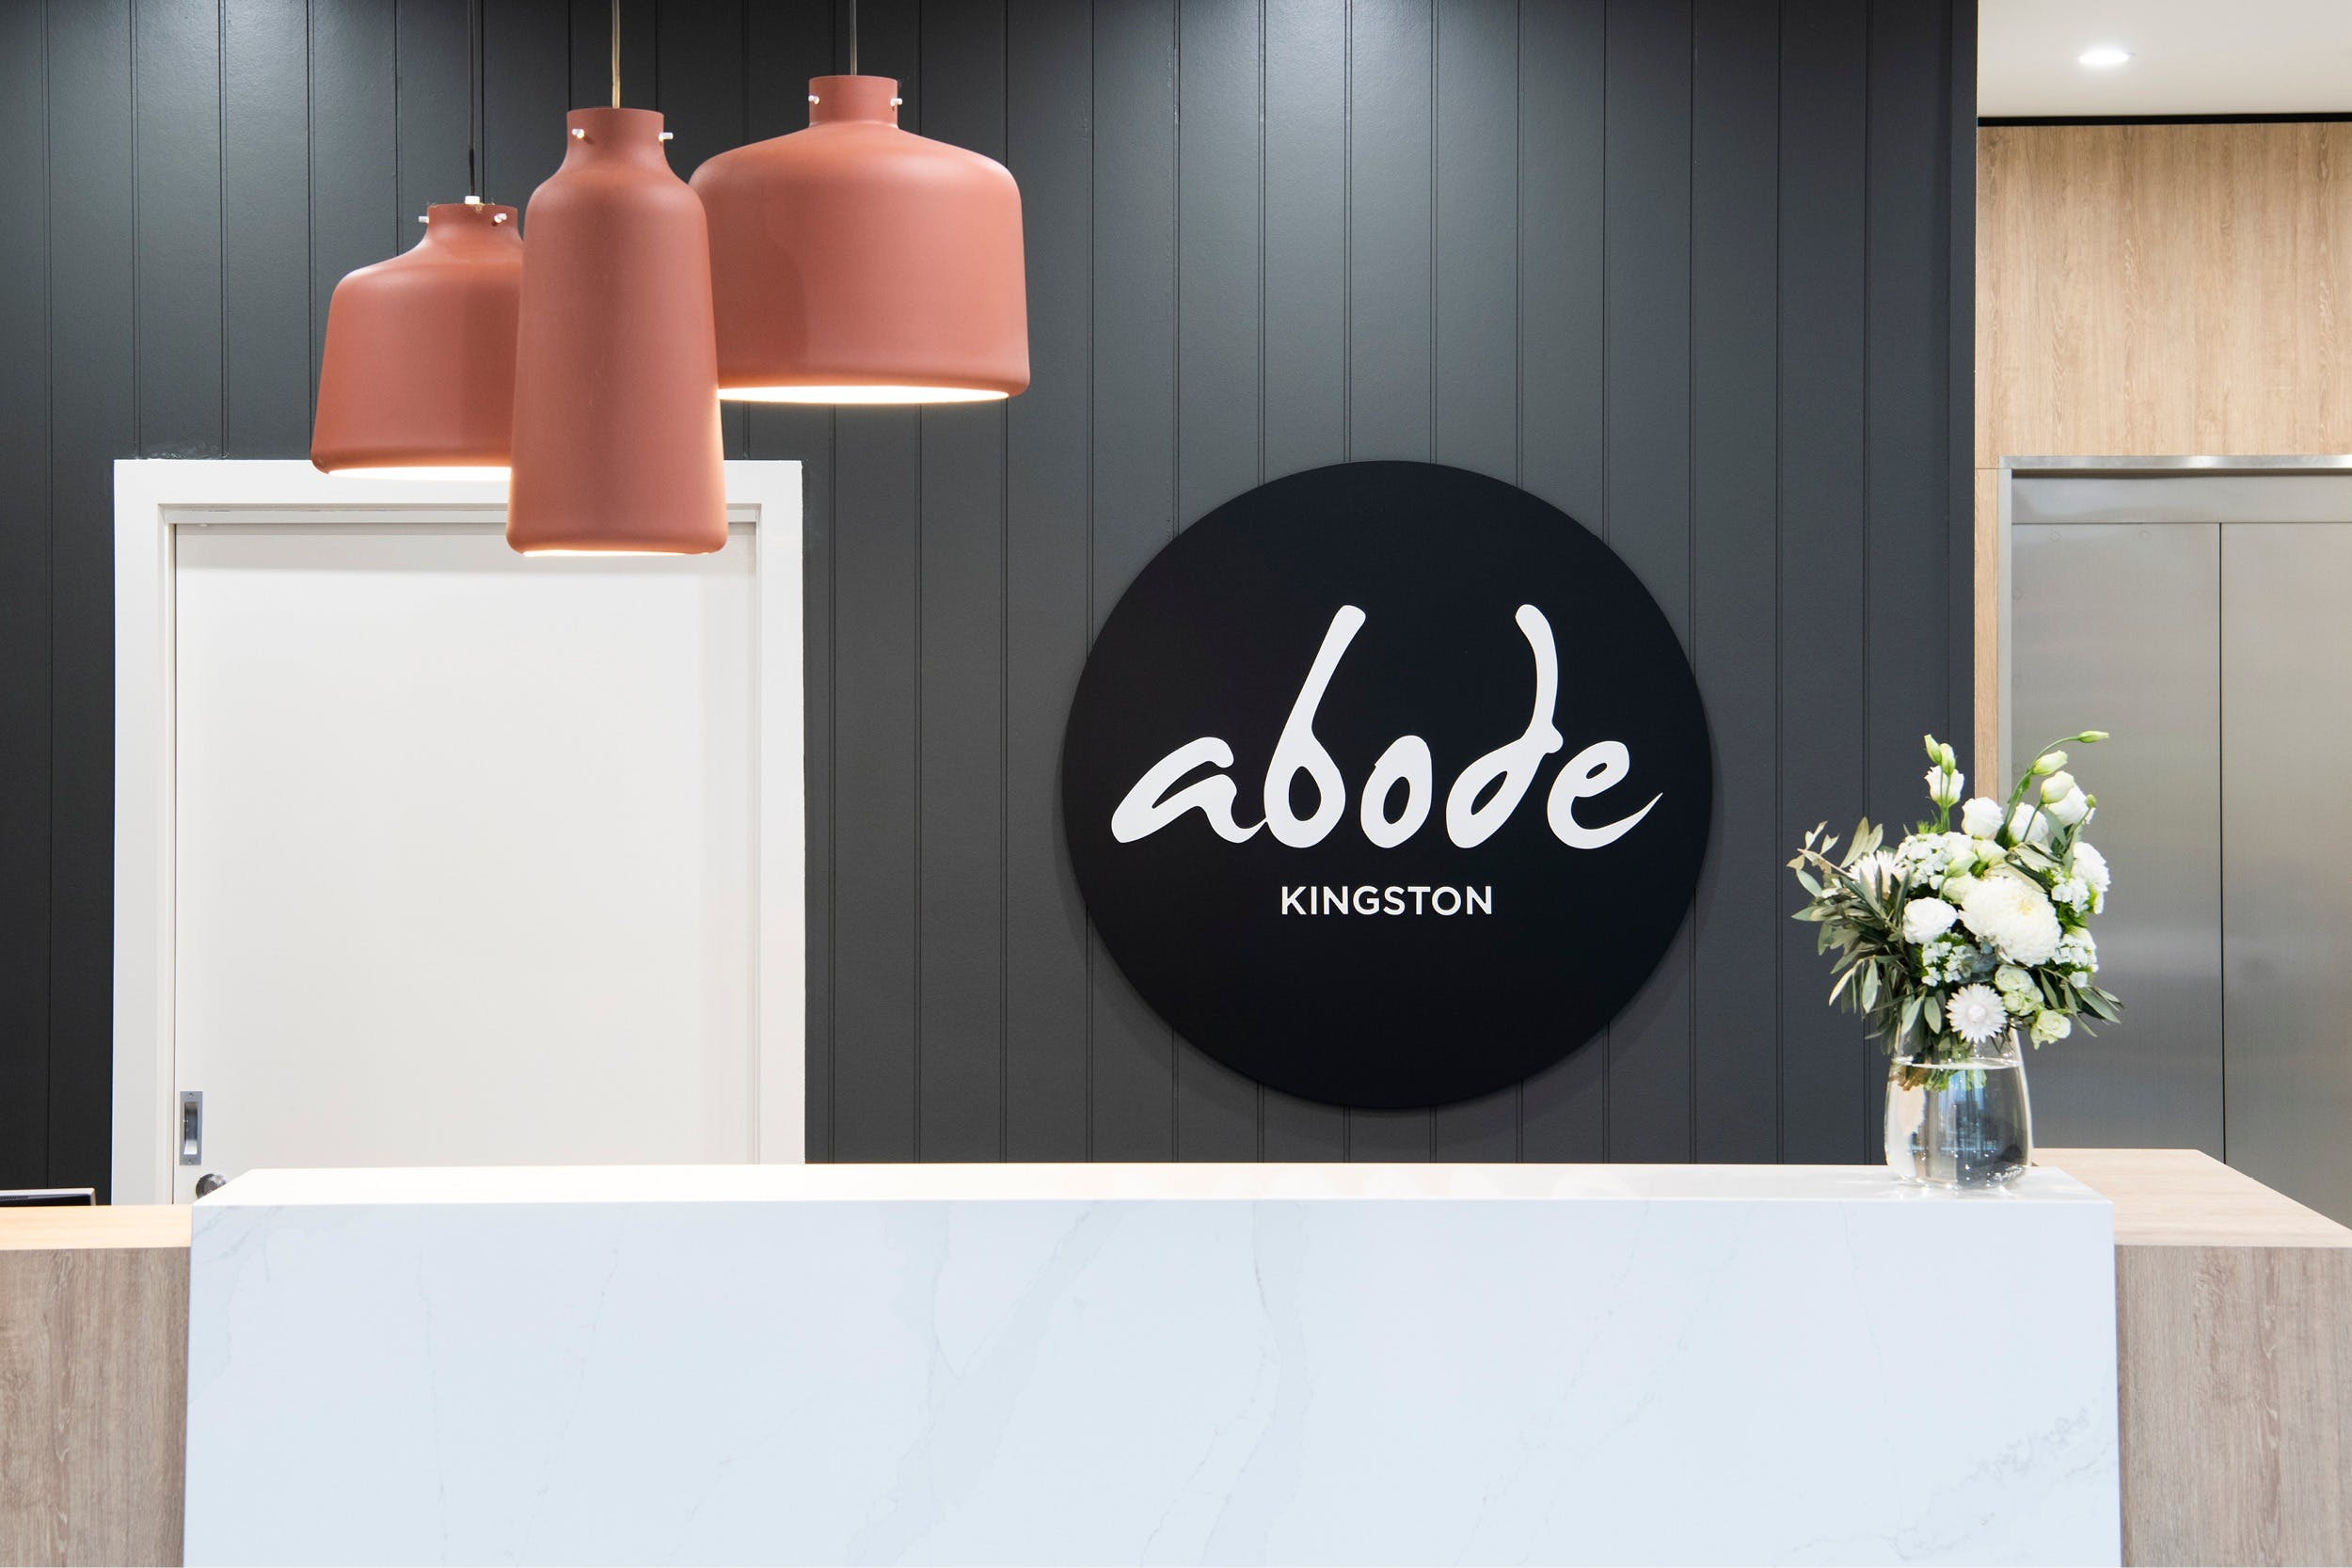 Abode Kingston - Accommodation in Surfers Paradise